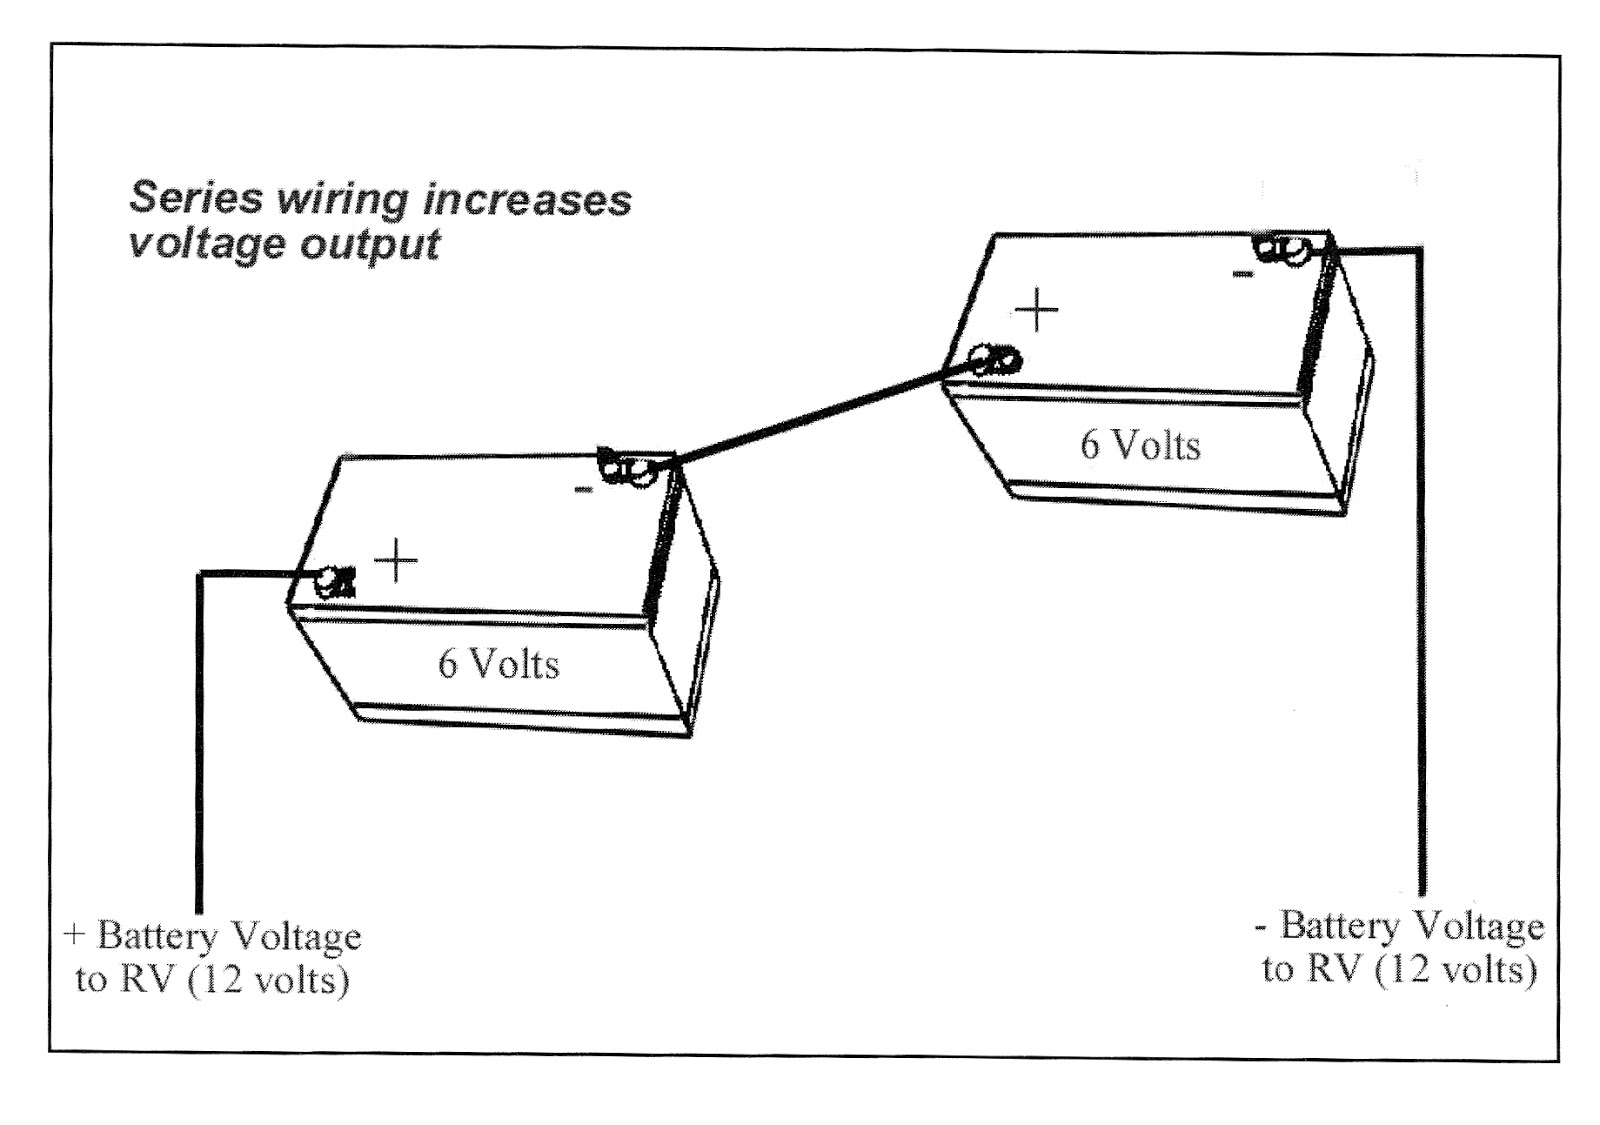 battery+series+wiring+diagram penny's tuppence (2 cents in brit) november 2012 Light Switch Wiring Diagram at couponss.co